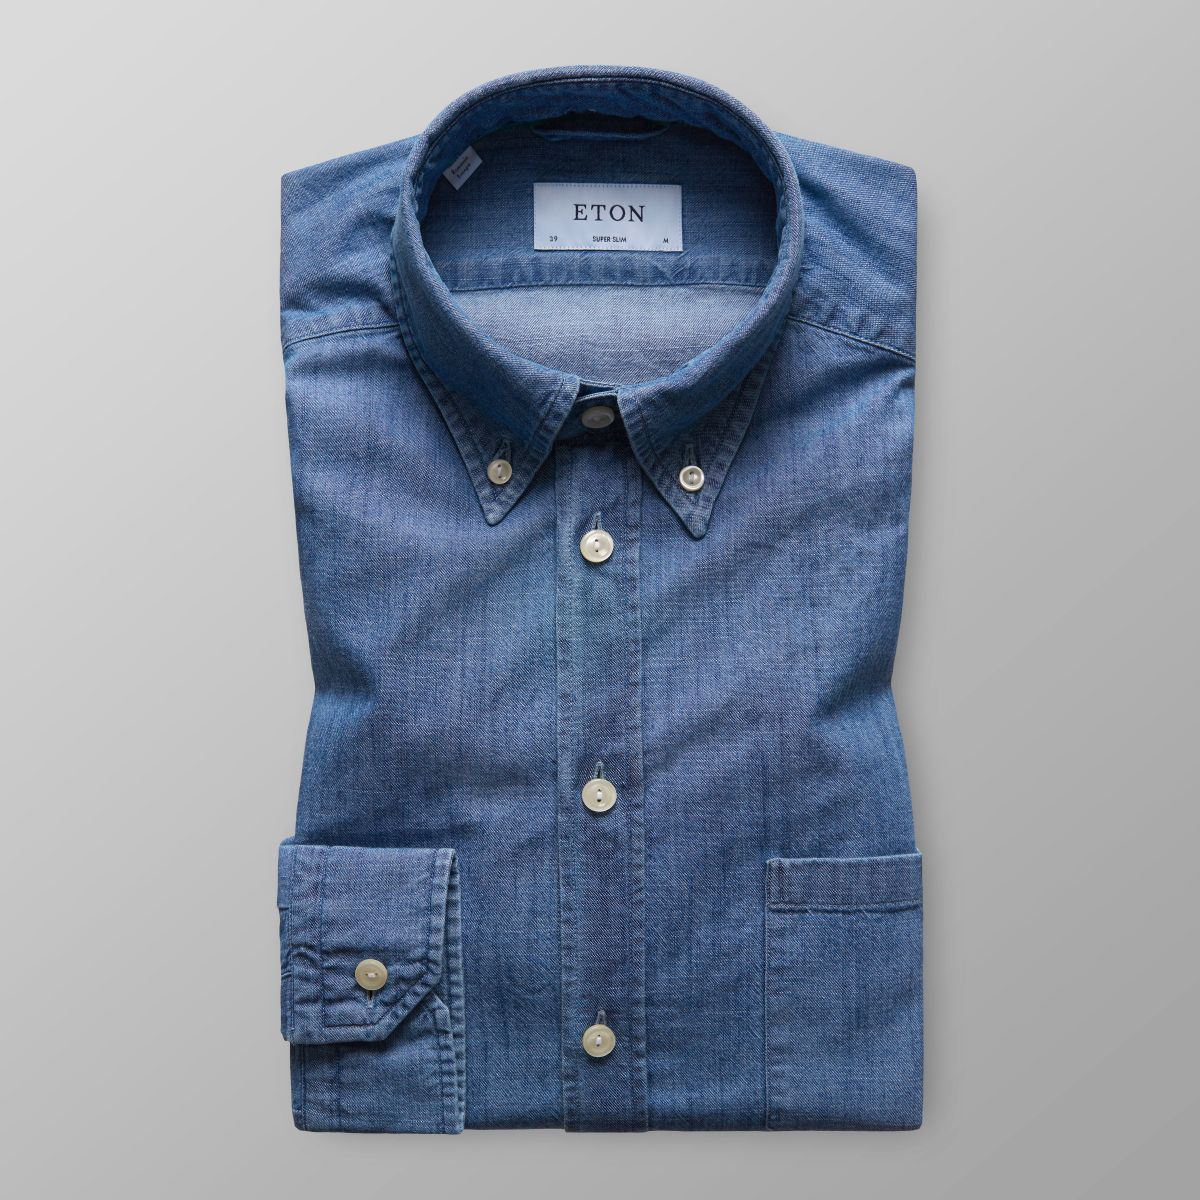 Denim Button Down Shirt - Super slim fit | Eton Shirts Deutschland